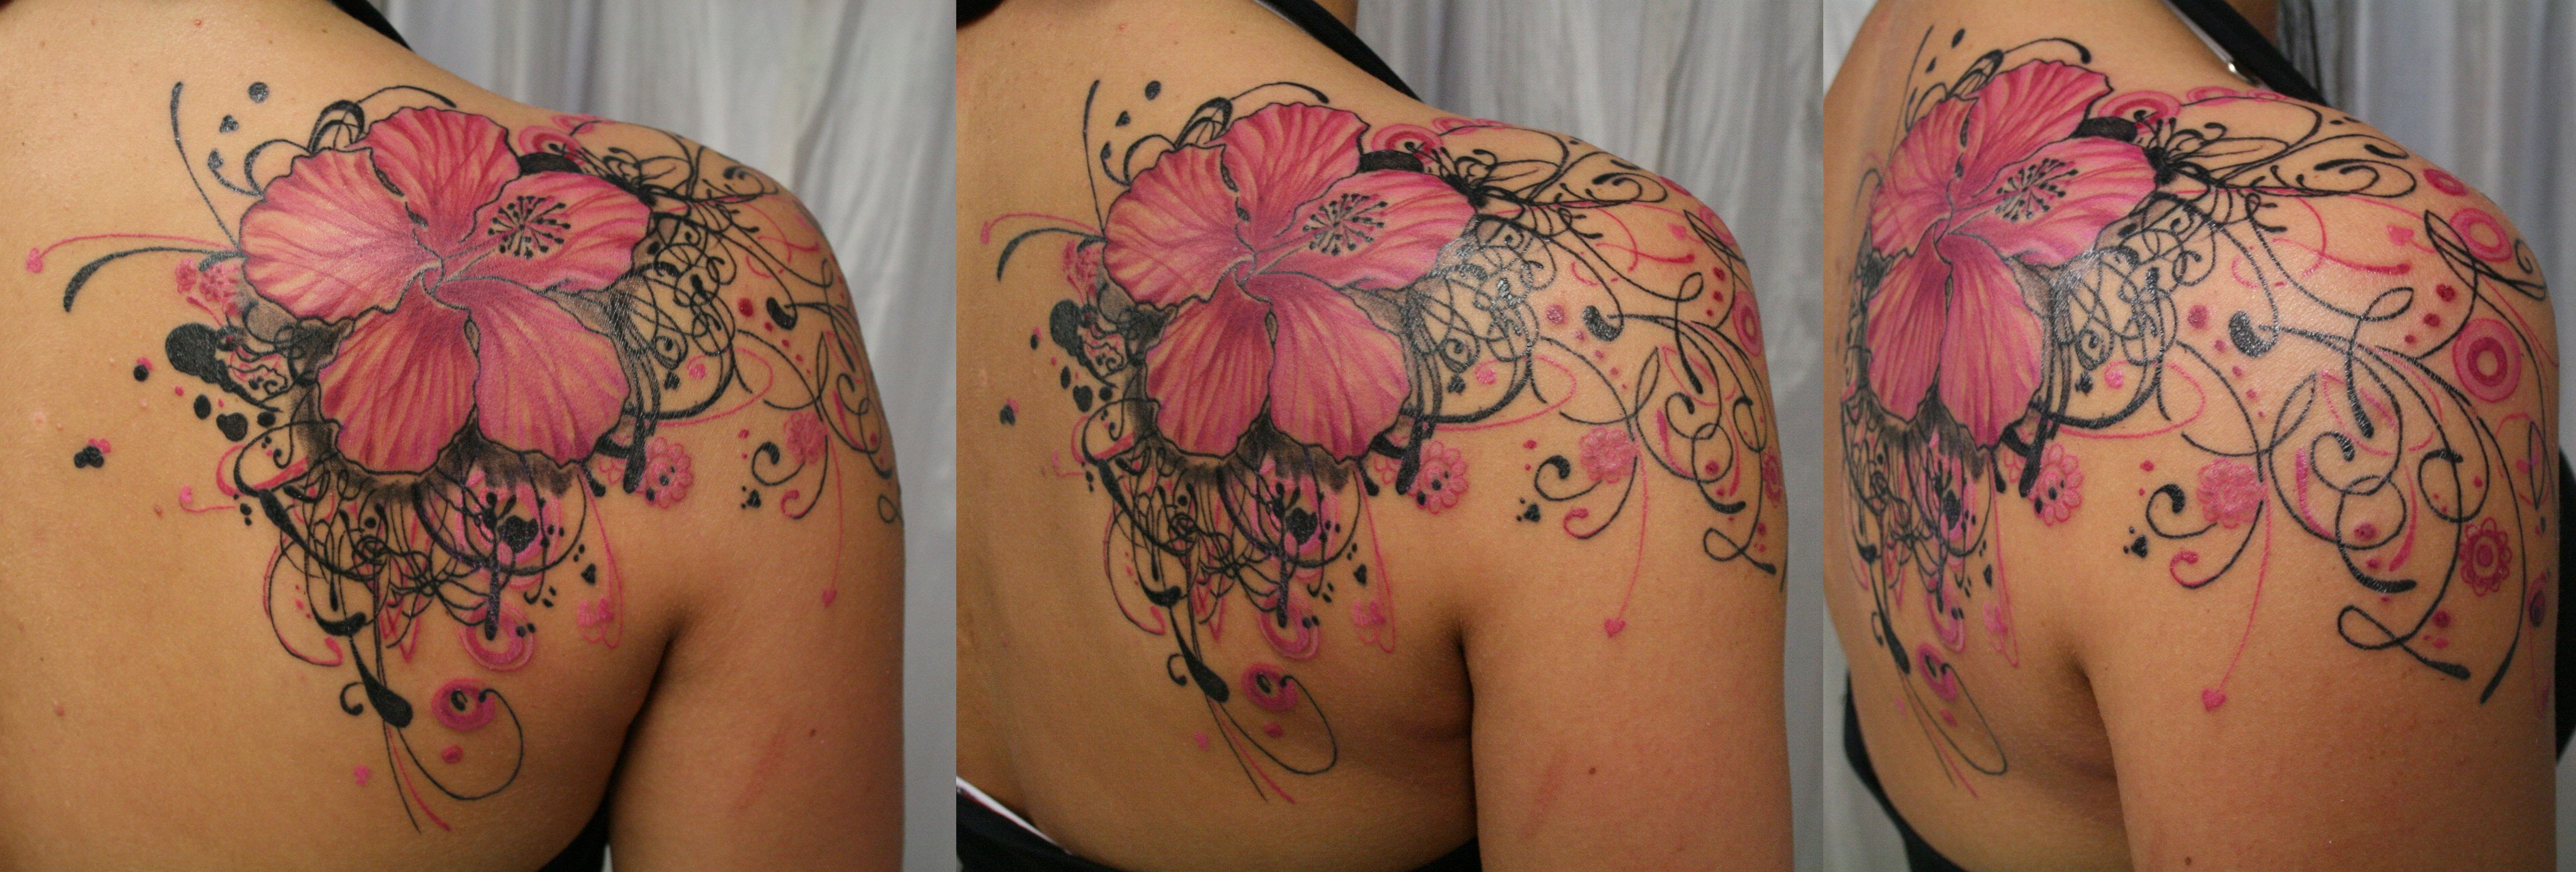 Jonat Choice Pictures Of Flower Tattoos On Shoulder